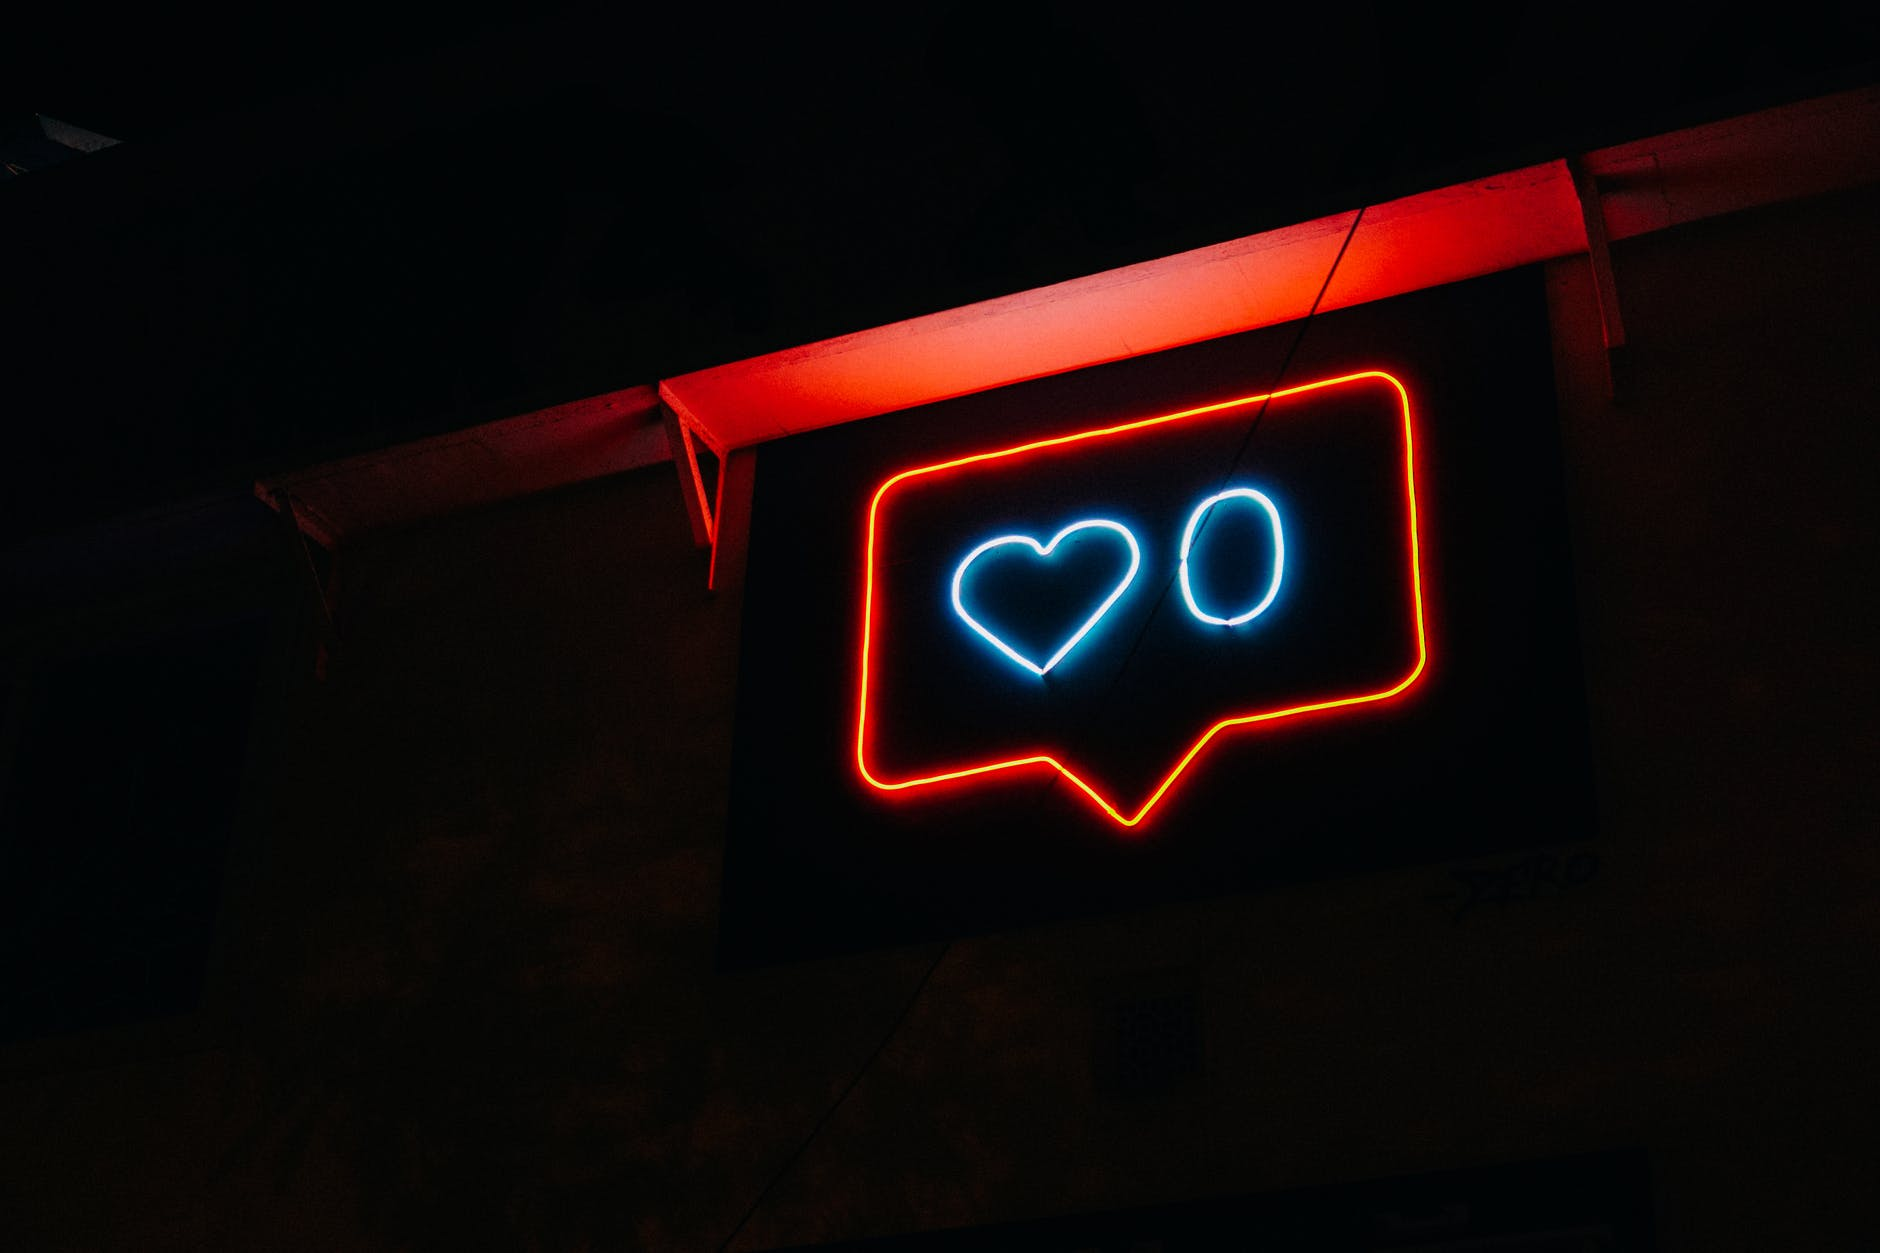 heart and zero neon light signage